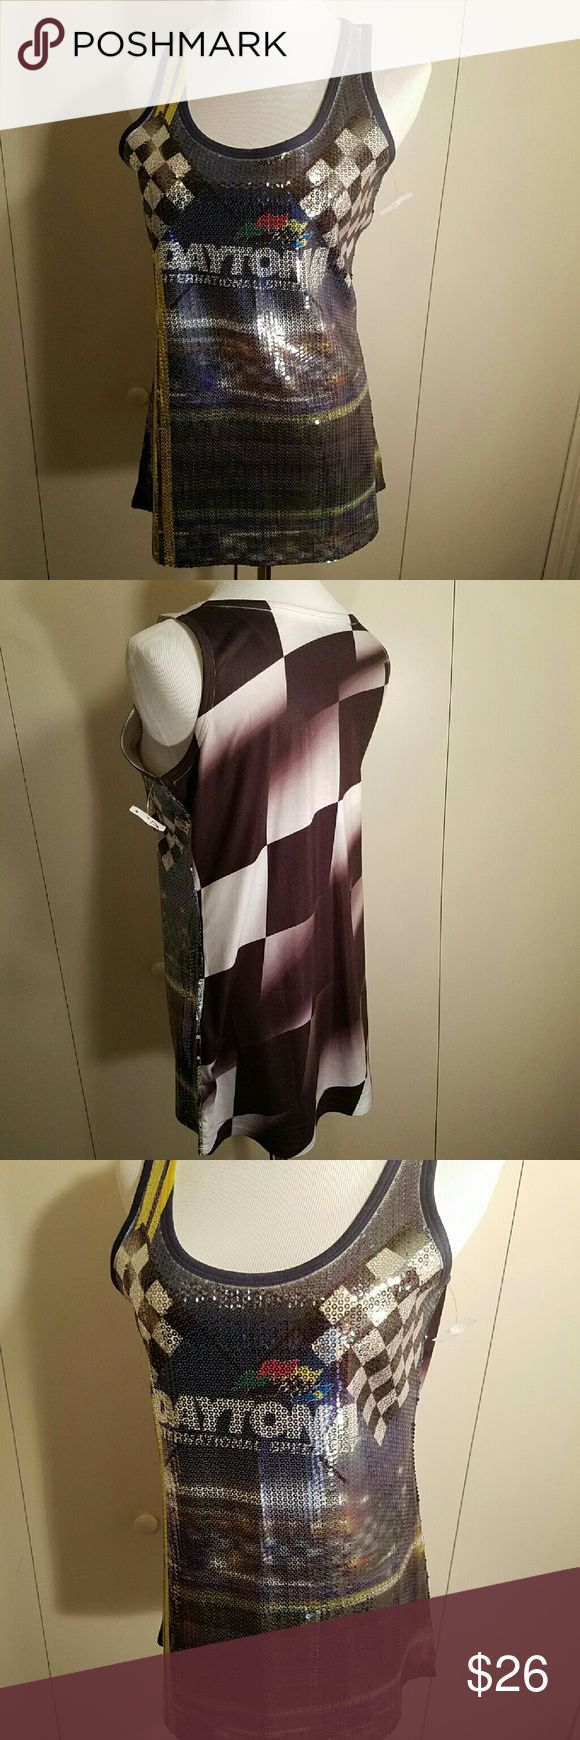 NWT: Gift ALERT! Daytona sequin Tank top Perfect Christmas gift for your race fan.  Sequin front tank top with Daytona logo on front and checkered flag printed on back. Tag is attached but price is torn off. Citi life Tops